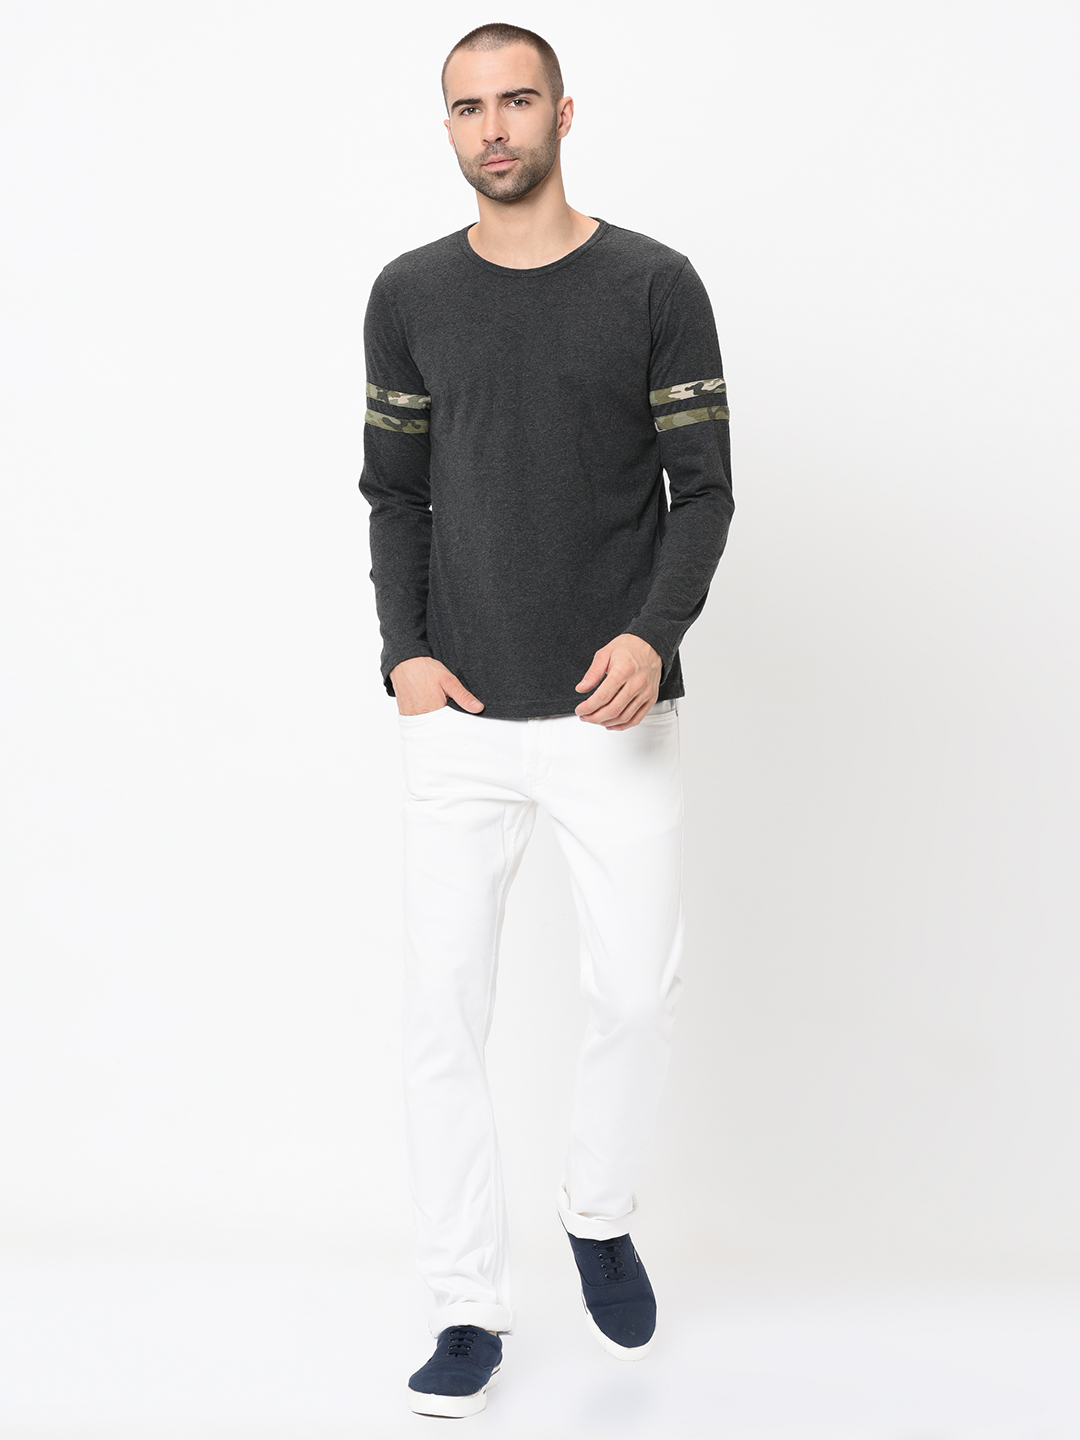 Rigo Men'S Charcoal Camouflage Stripe Detail On Full Sleeves Round Neck Single Jersey Cotton Slim Fit Casual Tshirt